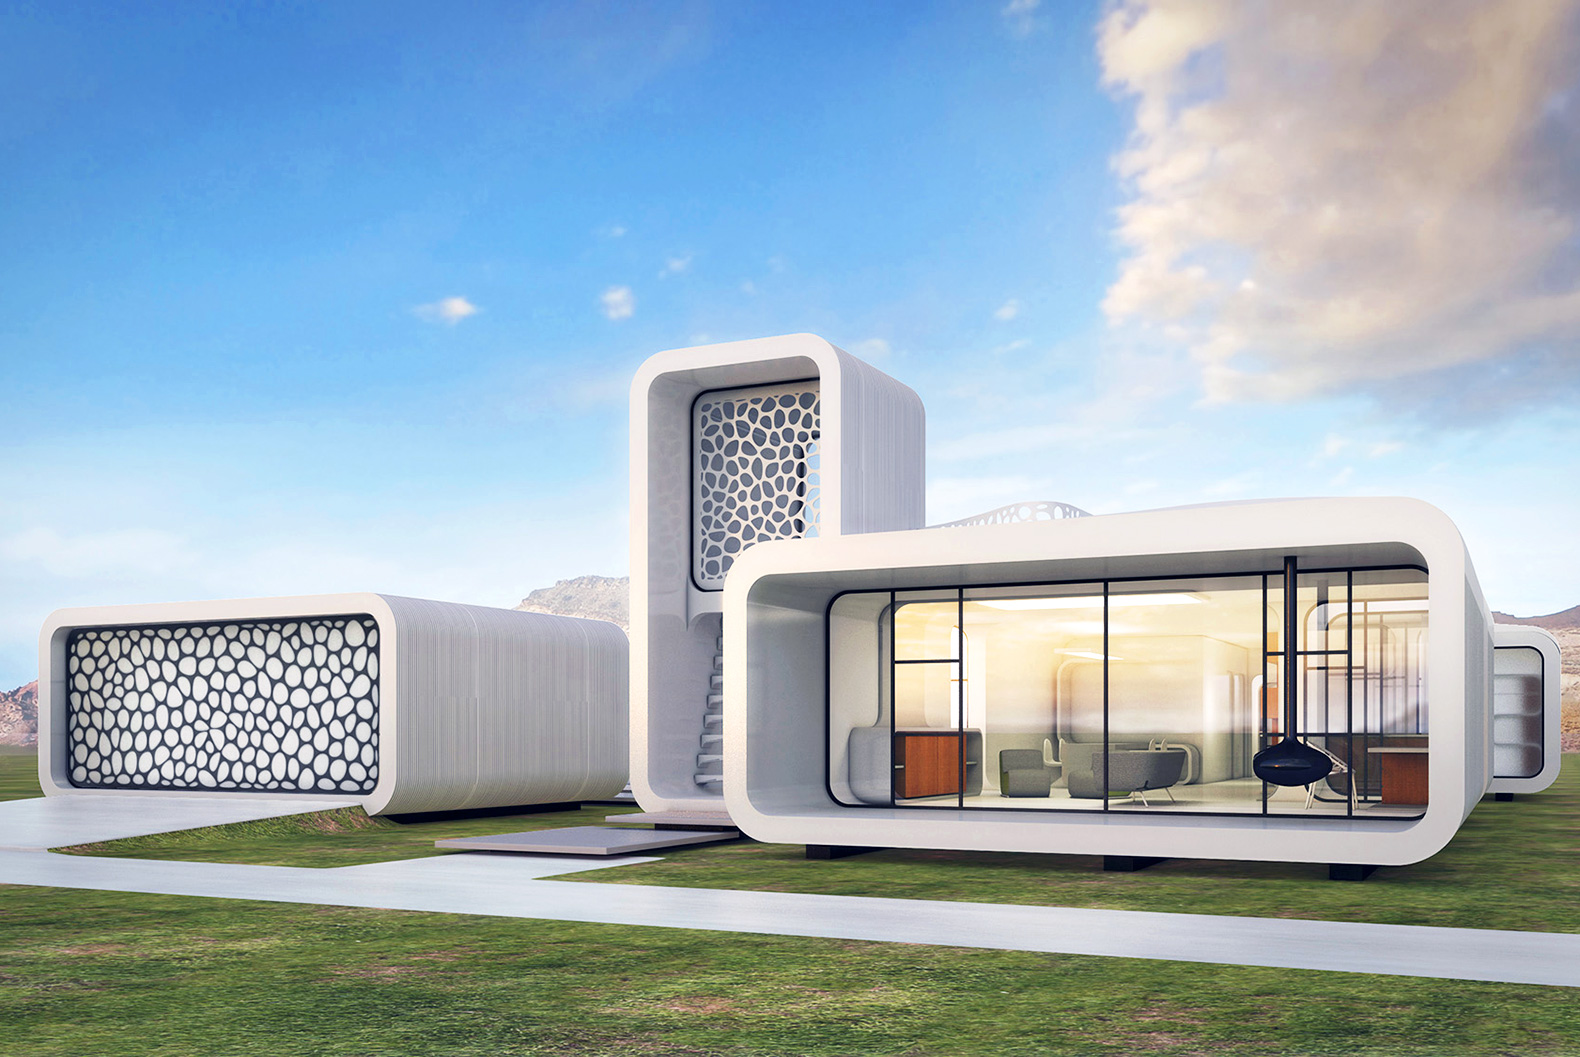 Real Architecture Buildings 3d-printed architecture | inhabitat - green design, innovation